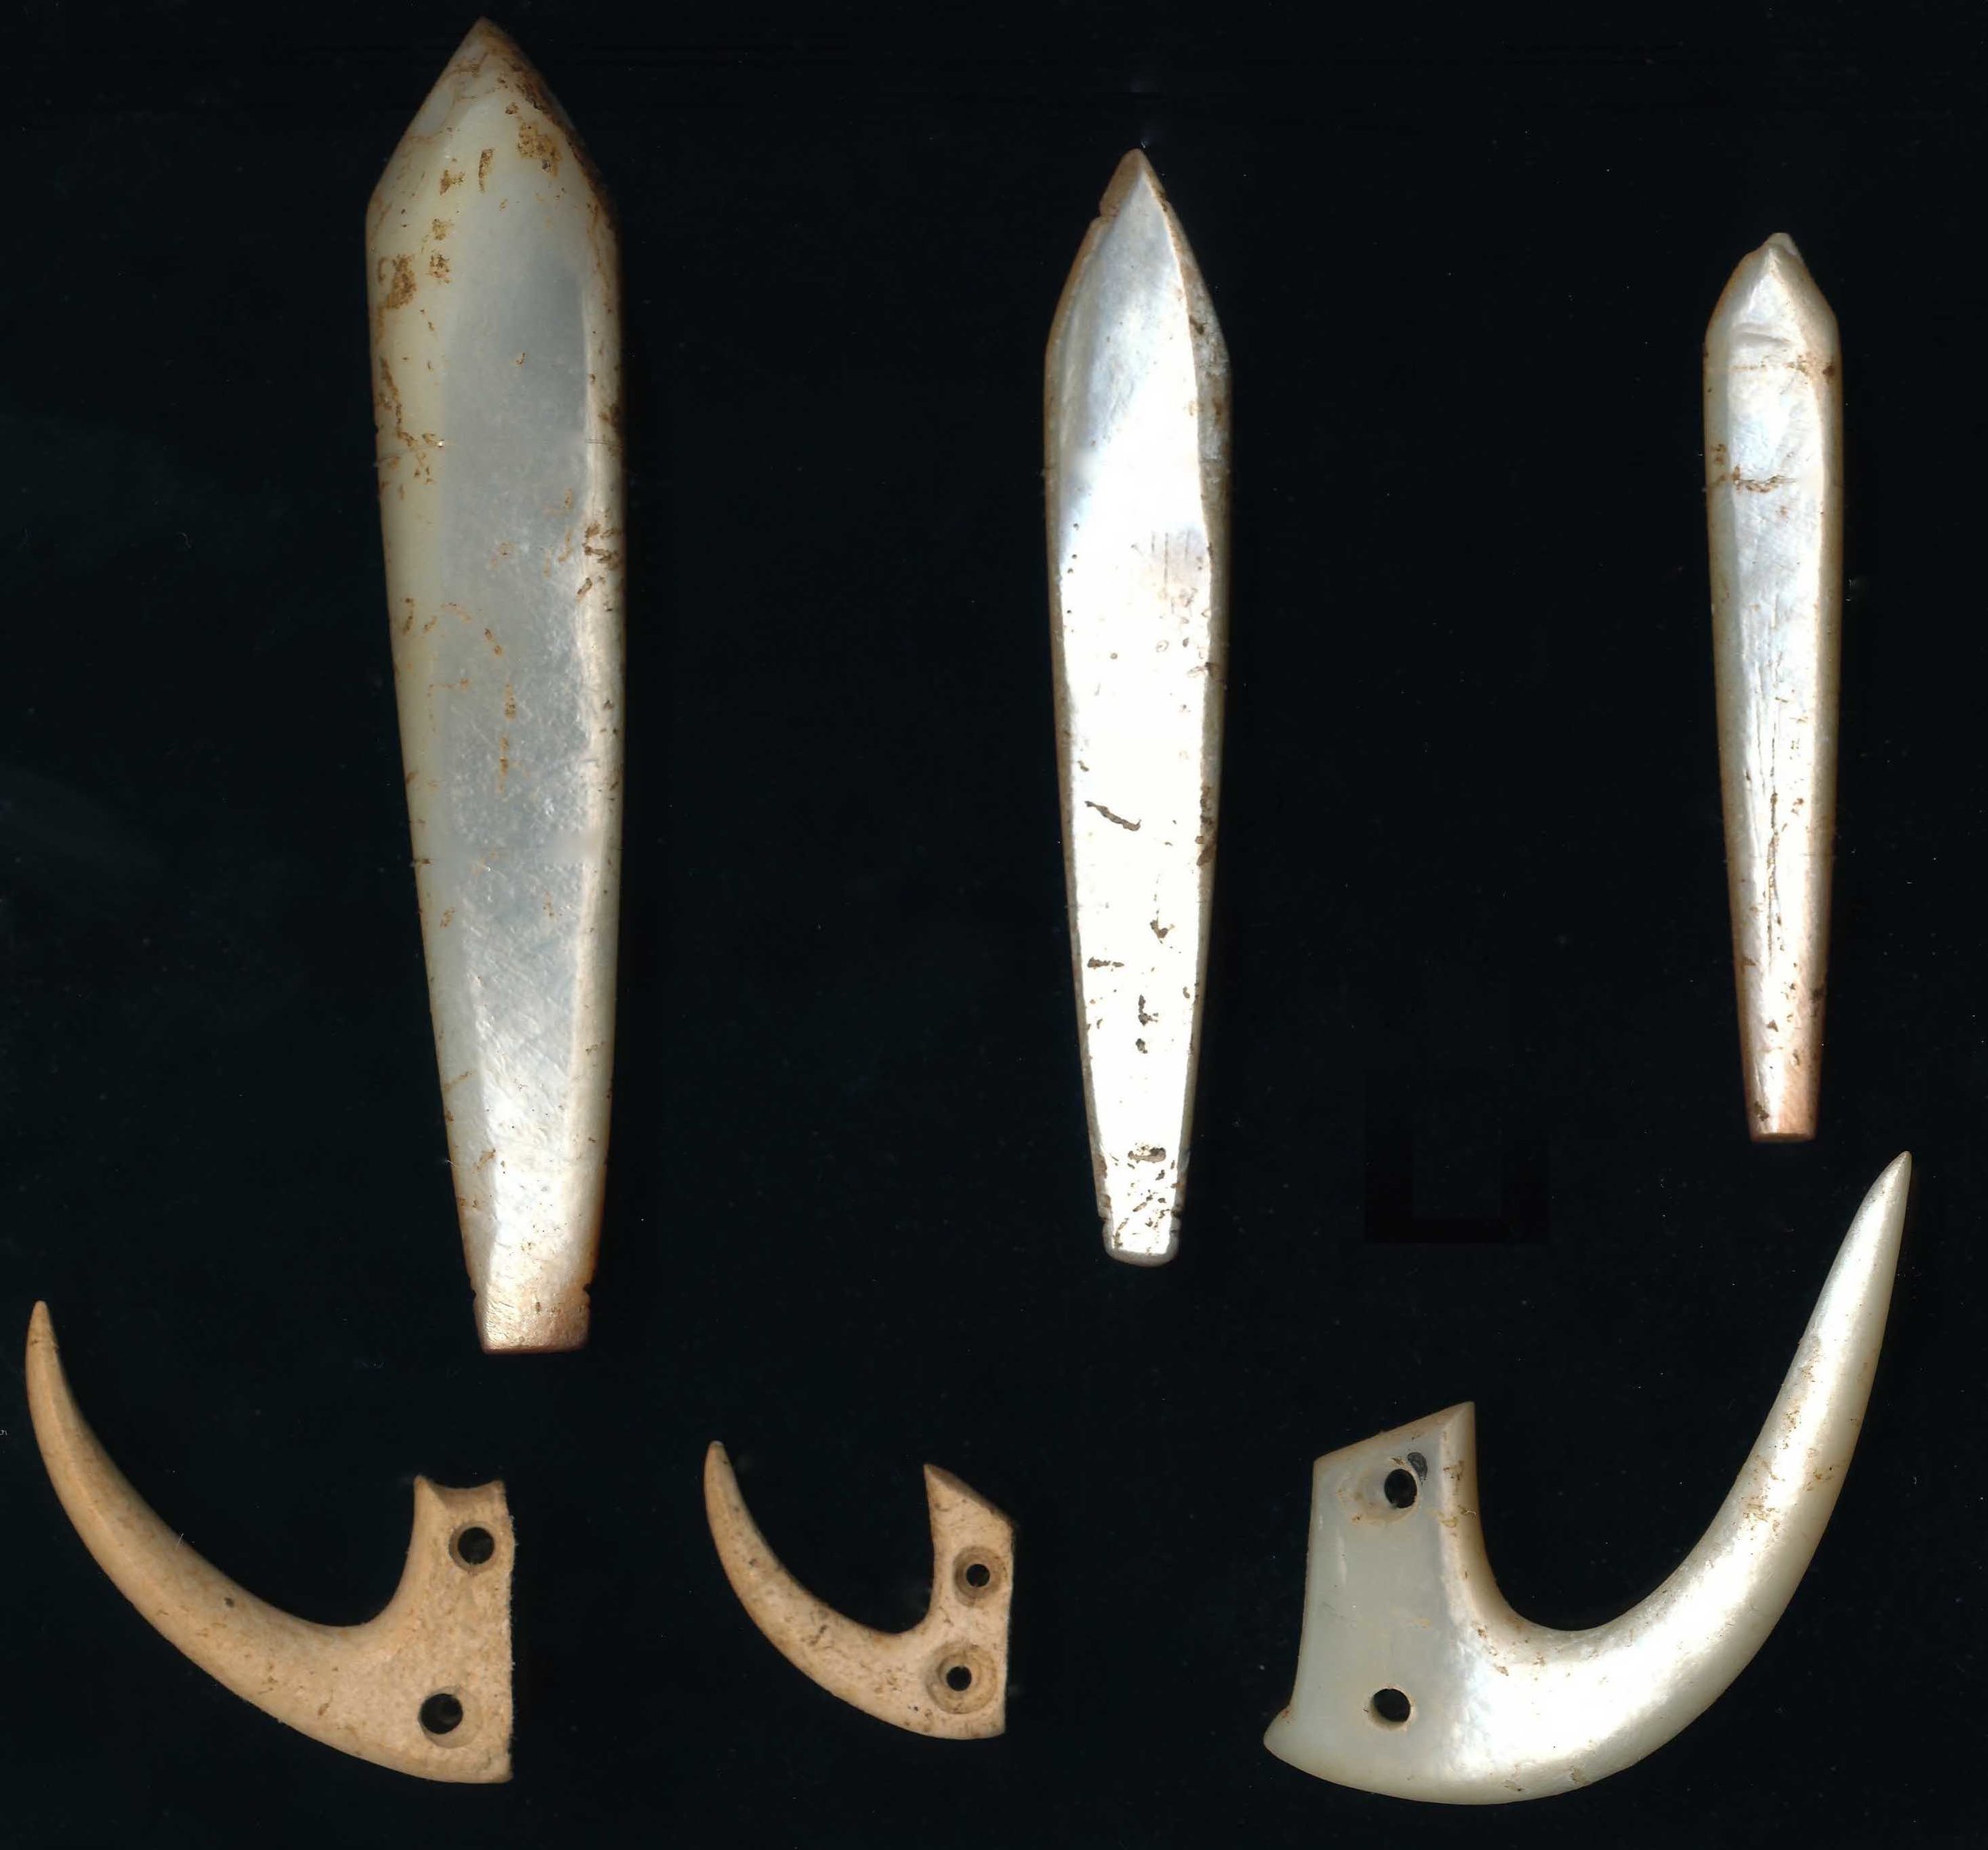 Trolling lure shanks and points discovered during the Hanamiai excavations. Artifacts such as these from the deepest deposits at Hanamiai date to the time of the earliest Polynesian settlement of the Marquesas, 700 - 800 years ago.